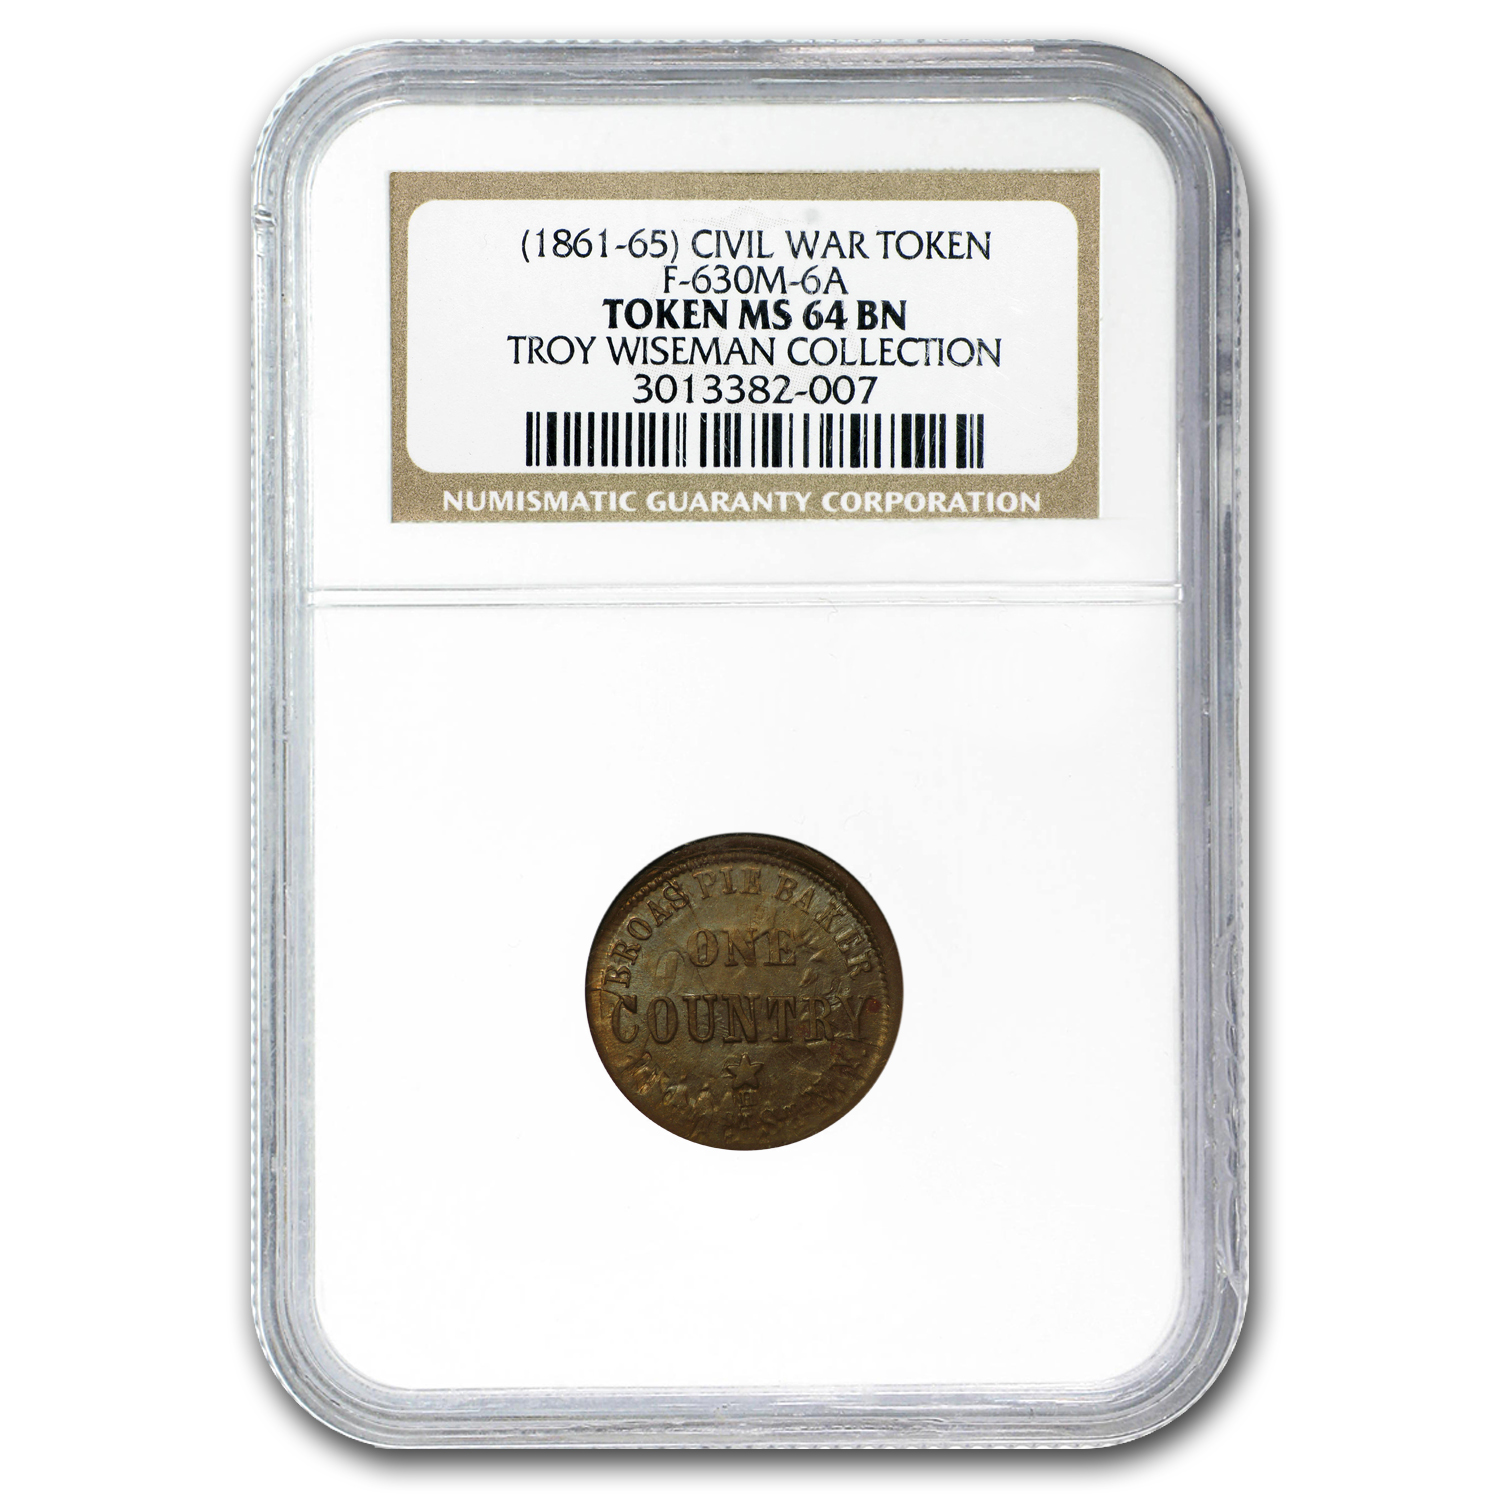 1863 Civil War Token Broas Pie Bakers MS-64BN NGC (NY-630M-6a)